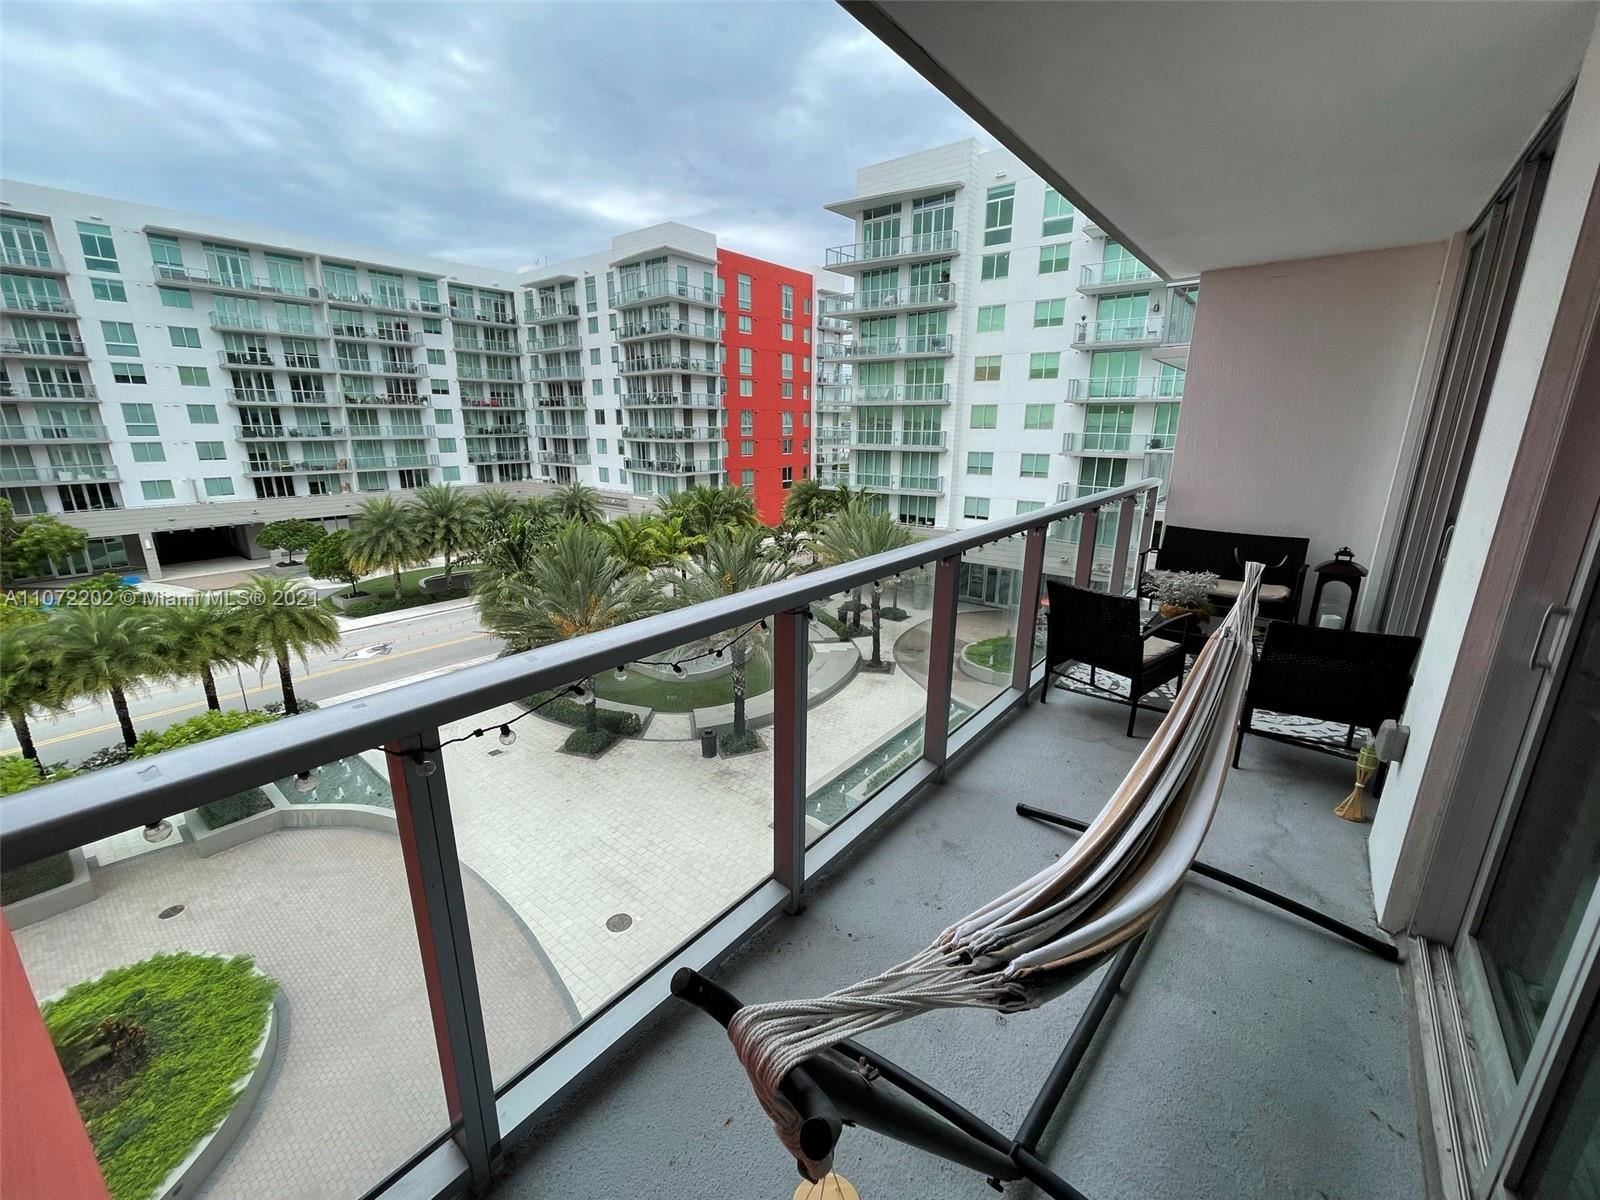 7751 NW 107th Ave #410, Doral, FL 33178 - #: A11072202